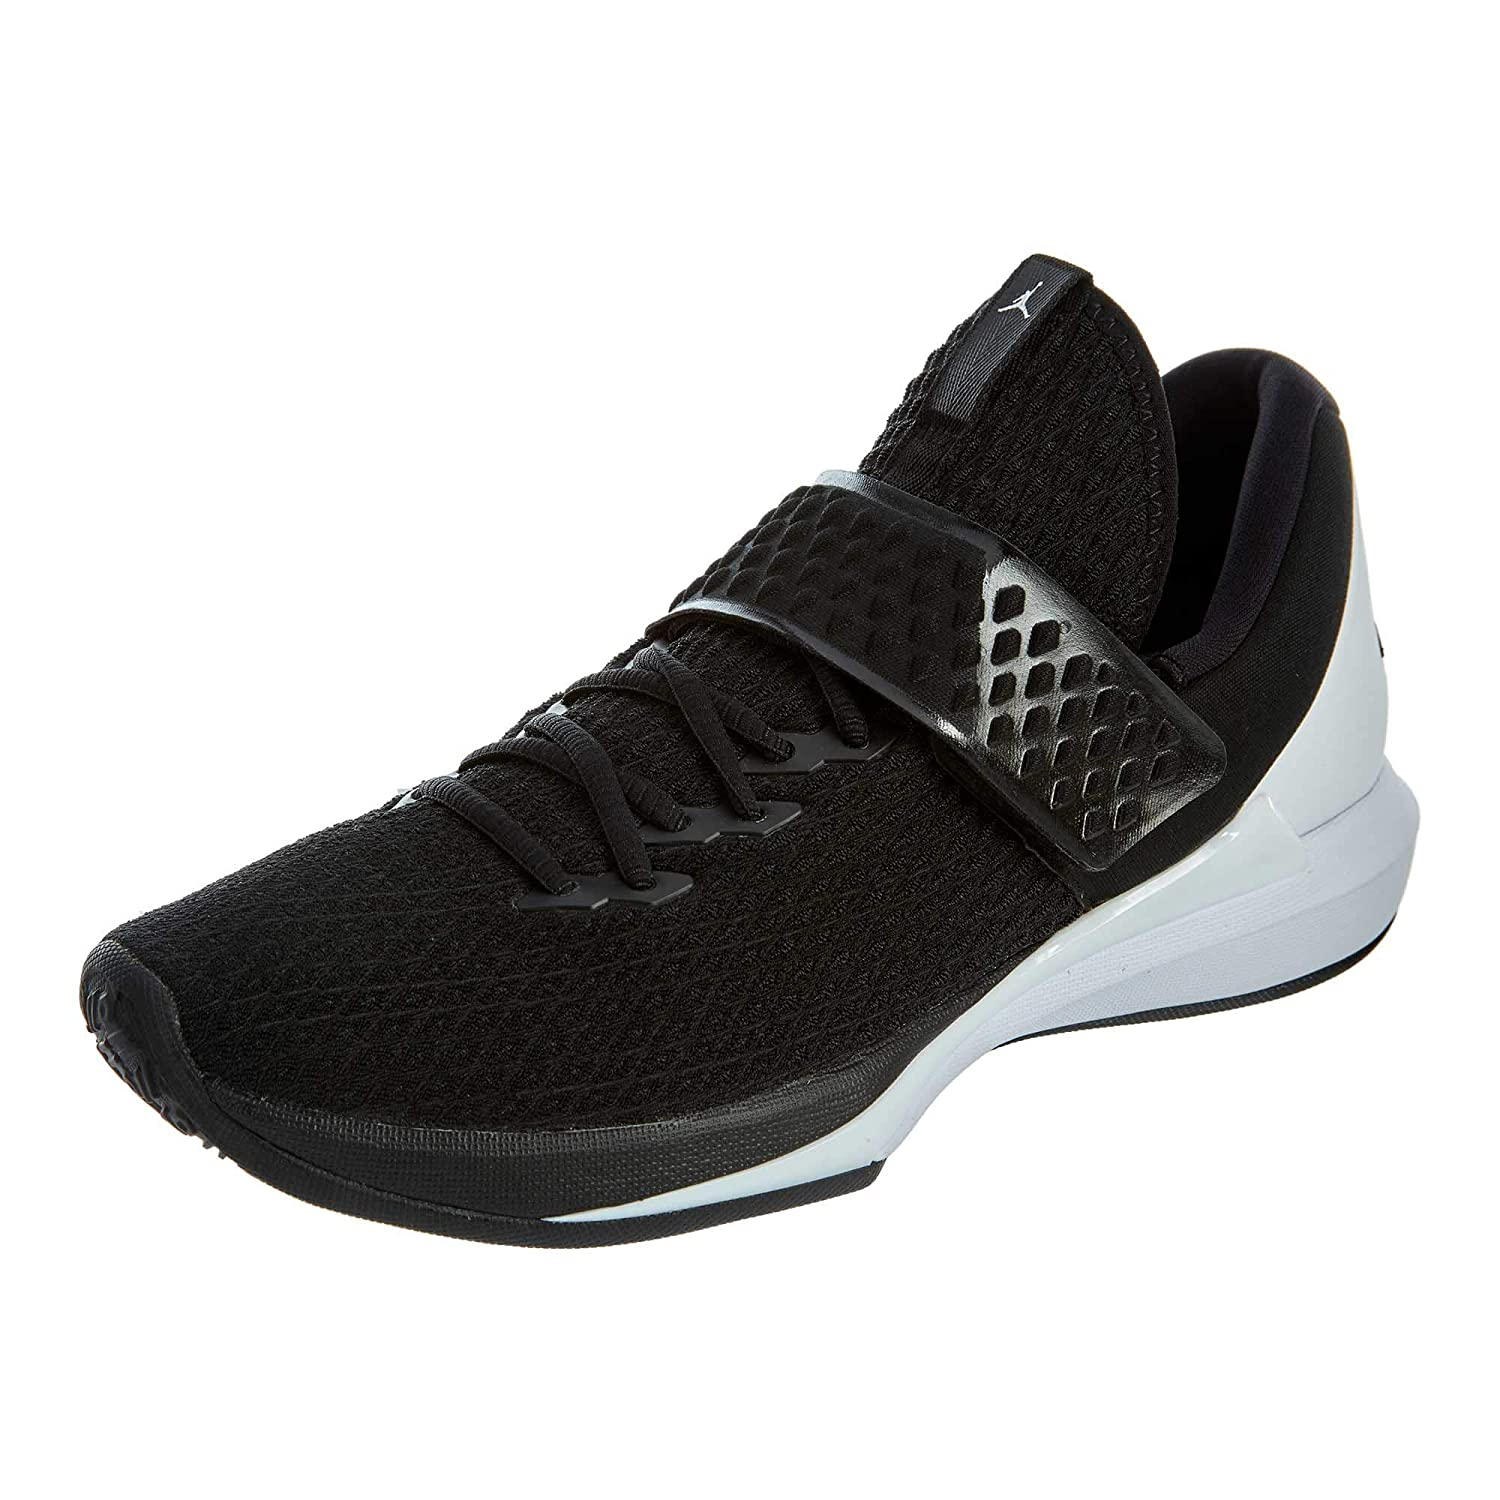 Black Black White Jordan Nike Men's Trainer 3 Training shoes